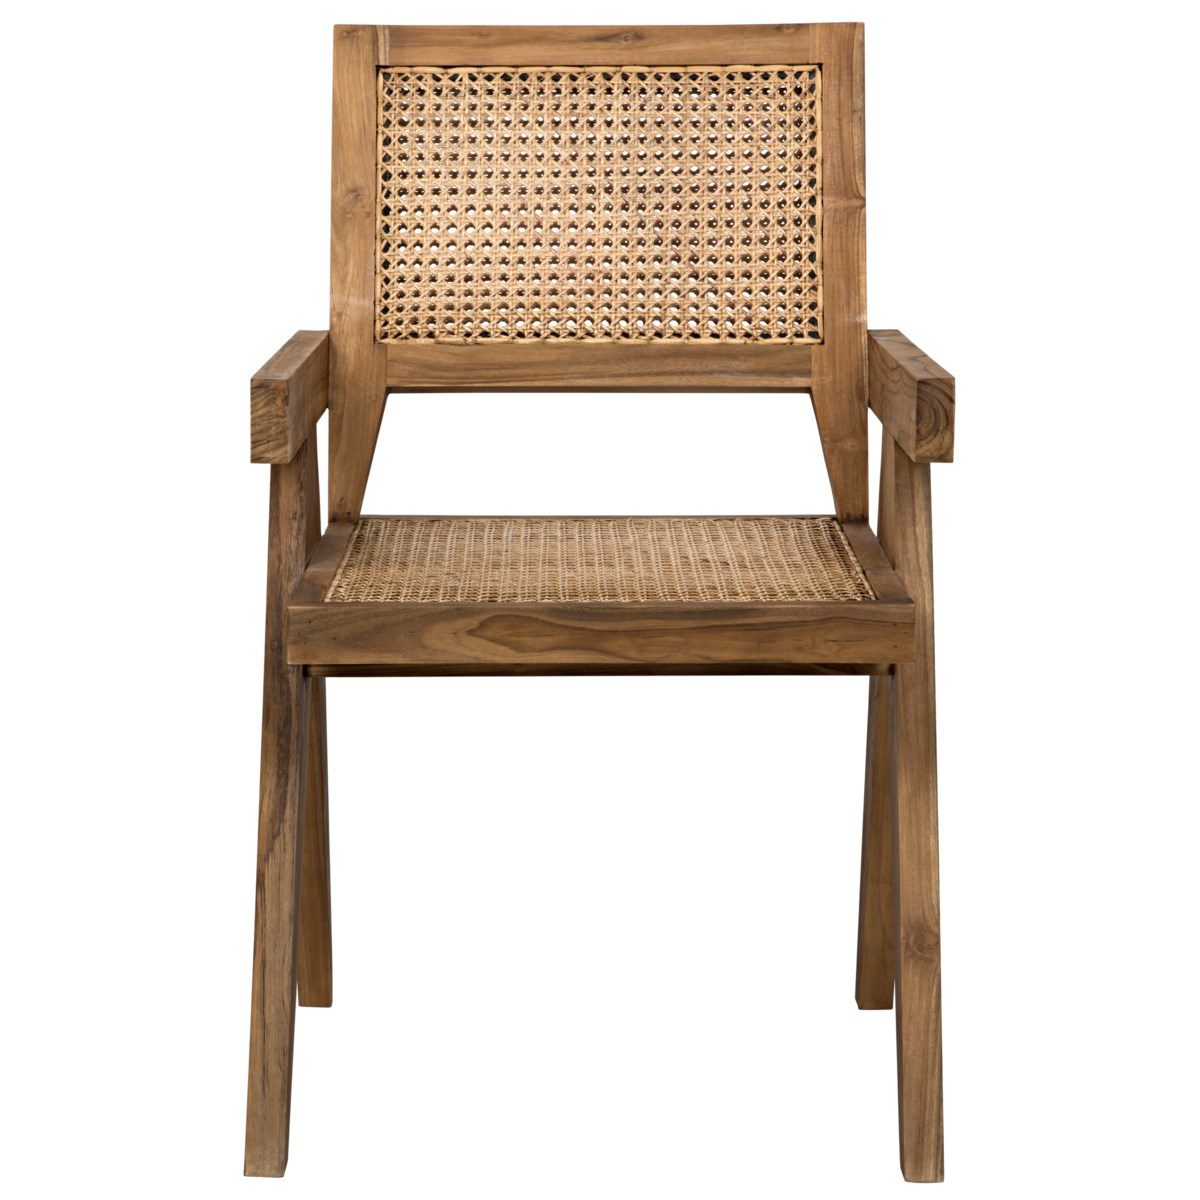 Jude Chair with Caning, Teak